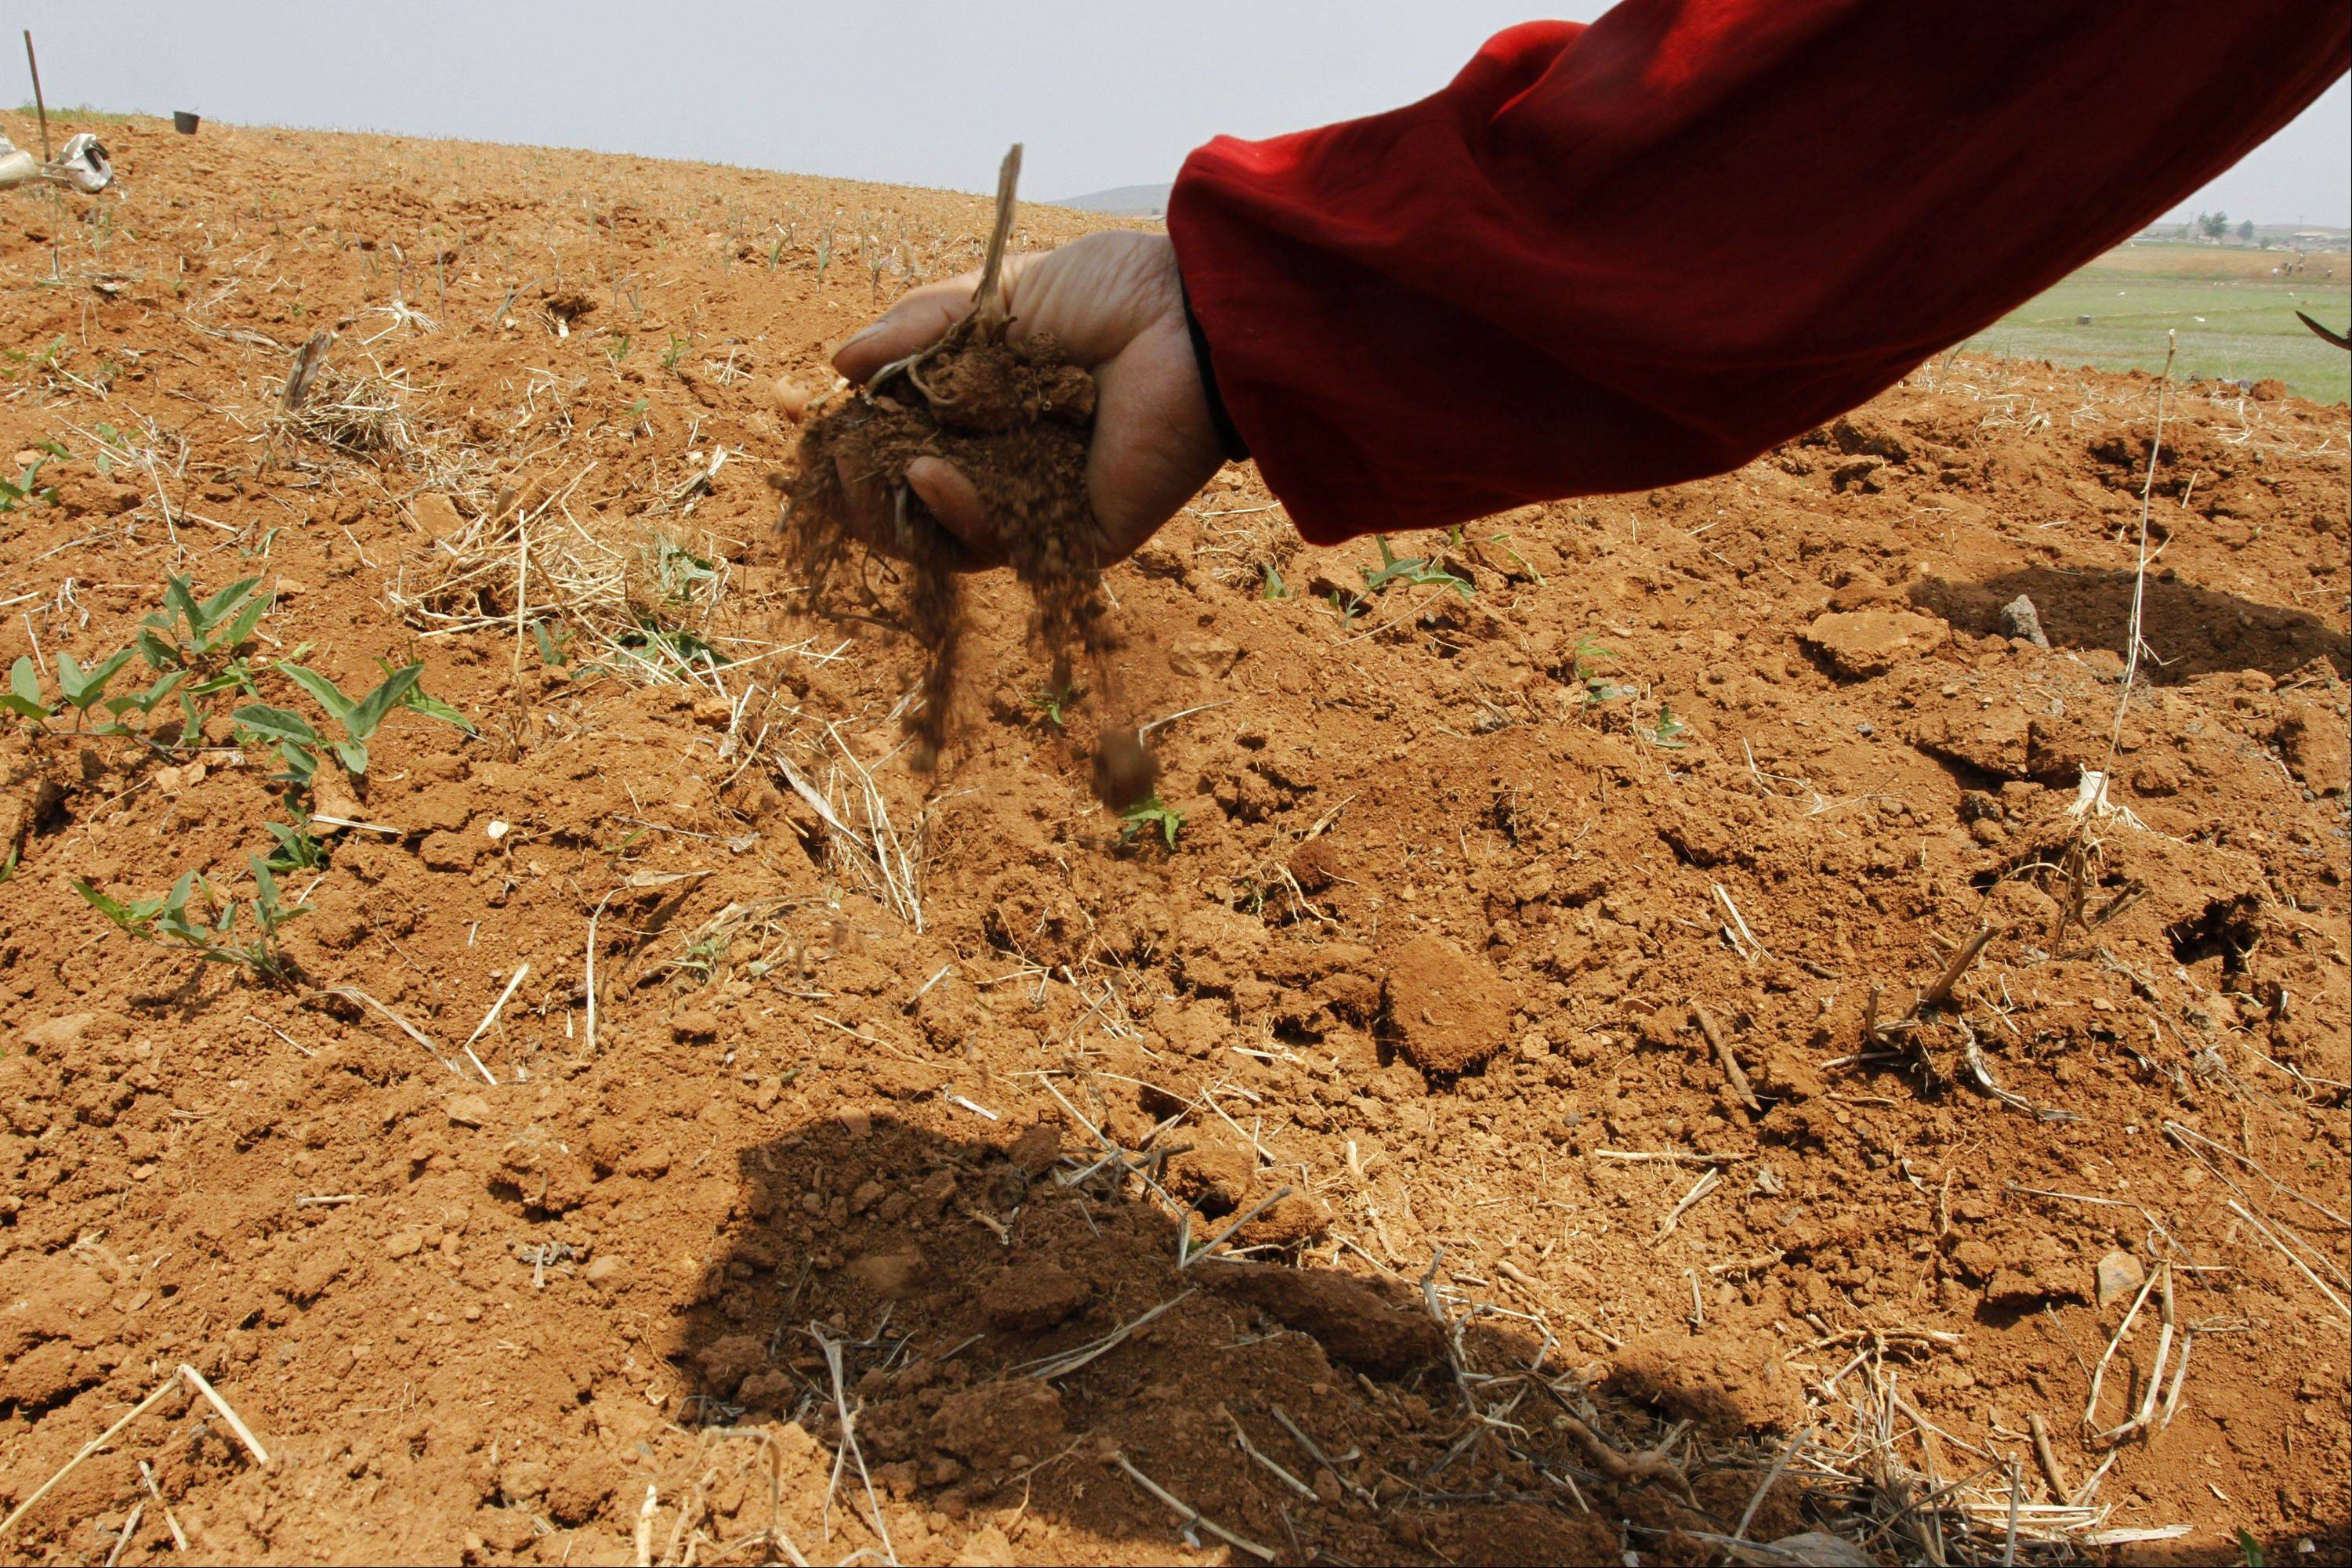 On May 25, a North Korean farmer sifts soil through his fingers in a dry corn field at a the Tokhae cooperative farm on the outskirts of Nampho, North Korea. North Korea is reporting a serious drought that could worsen already critical food shortages, but help is unlikely to come from the United States and South Korea following Pyongyang's widely criticized rocket launch.